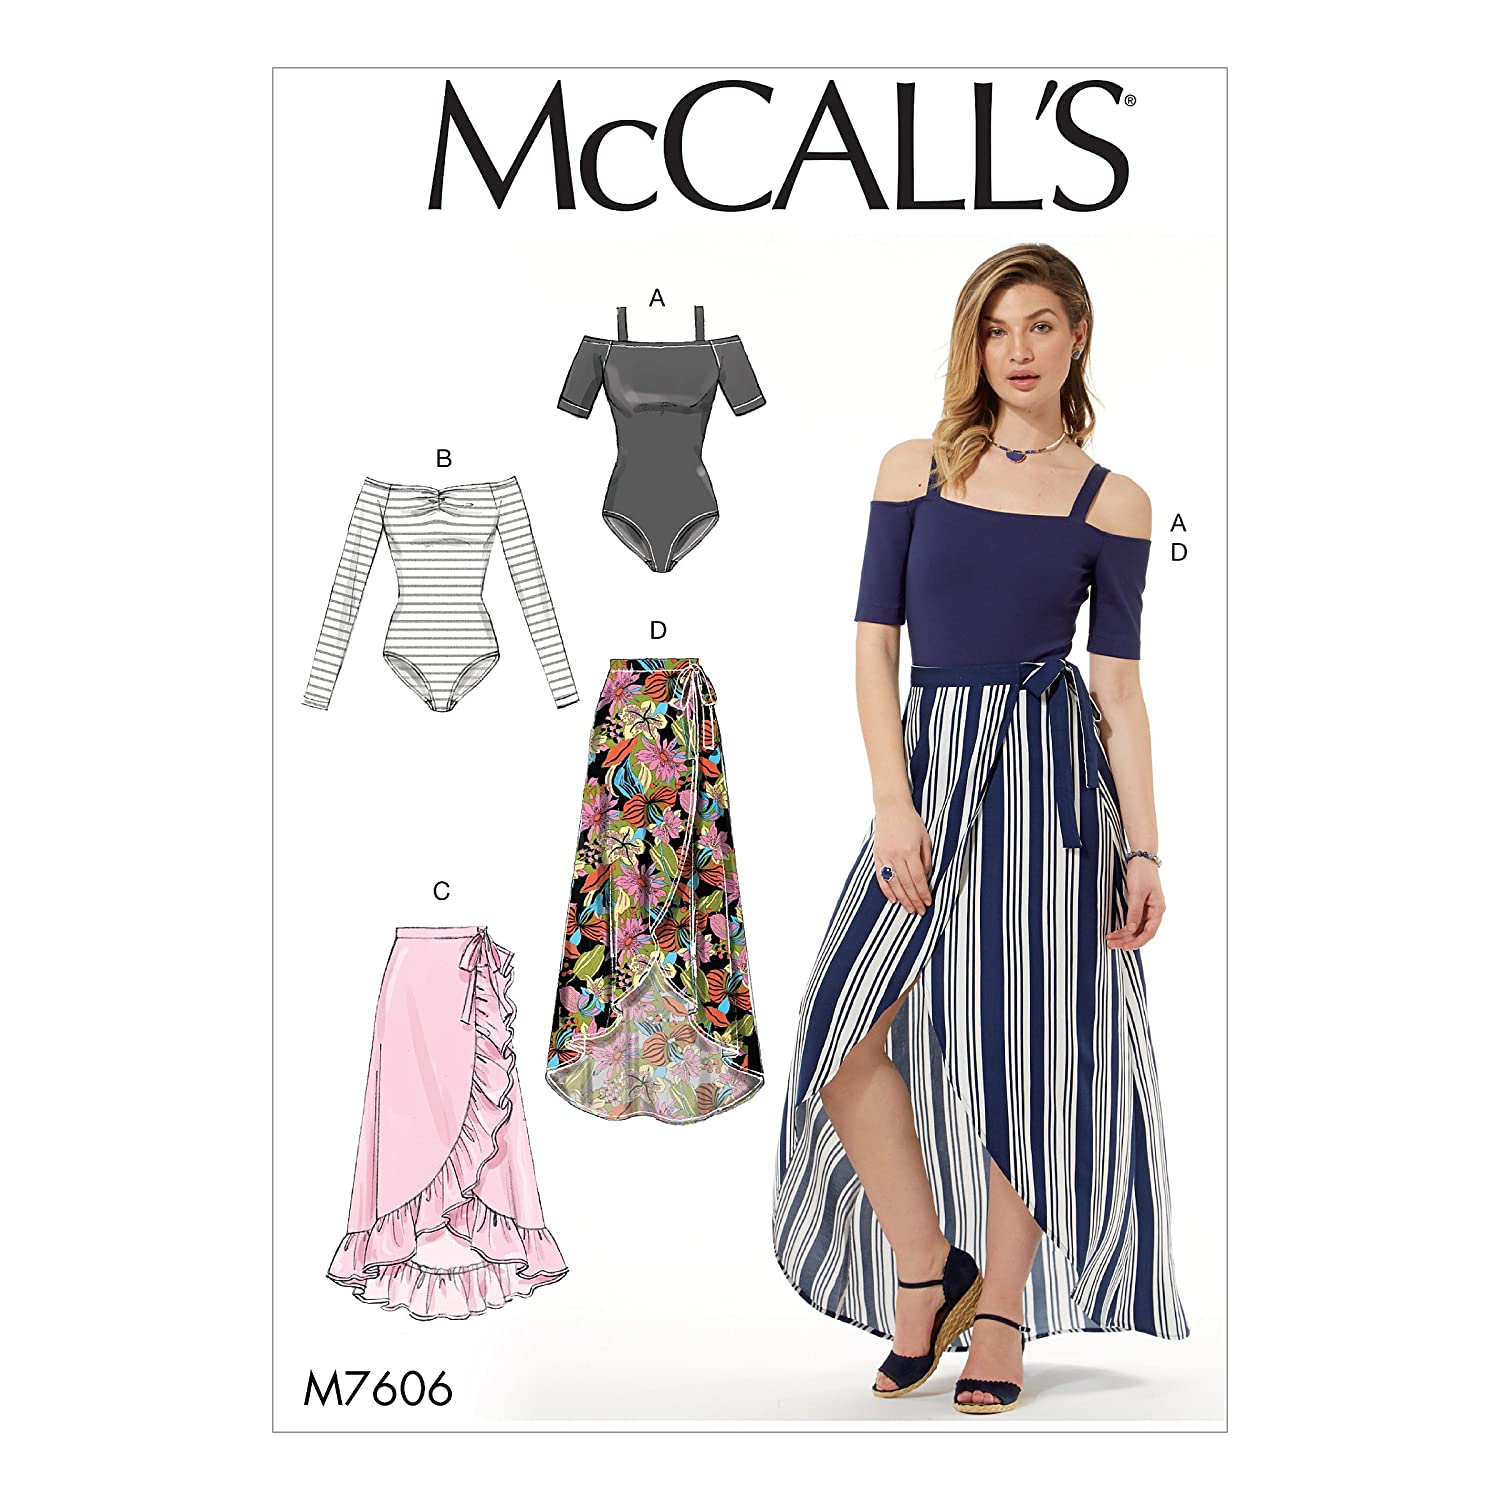 McCall' s Patterns 7606y taglie neonato e gonne,, XS/m The McCall Pattern Company M76060Y0